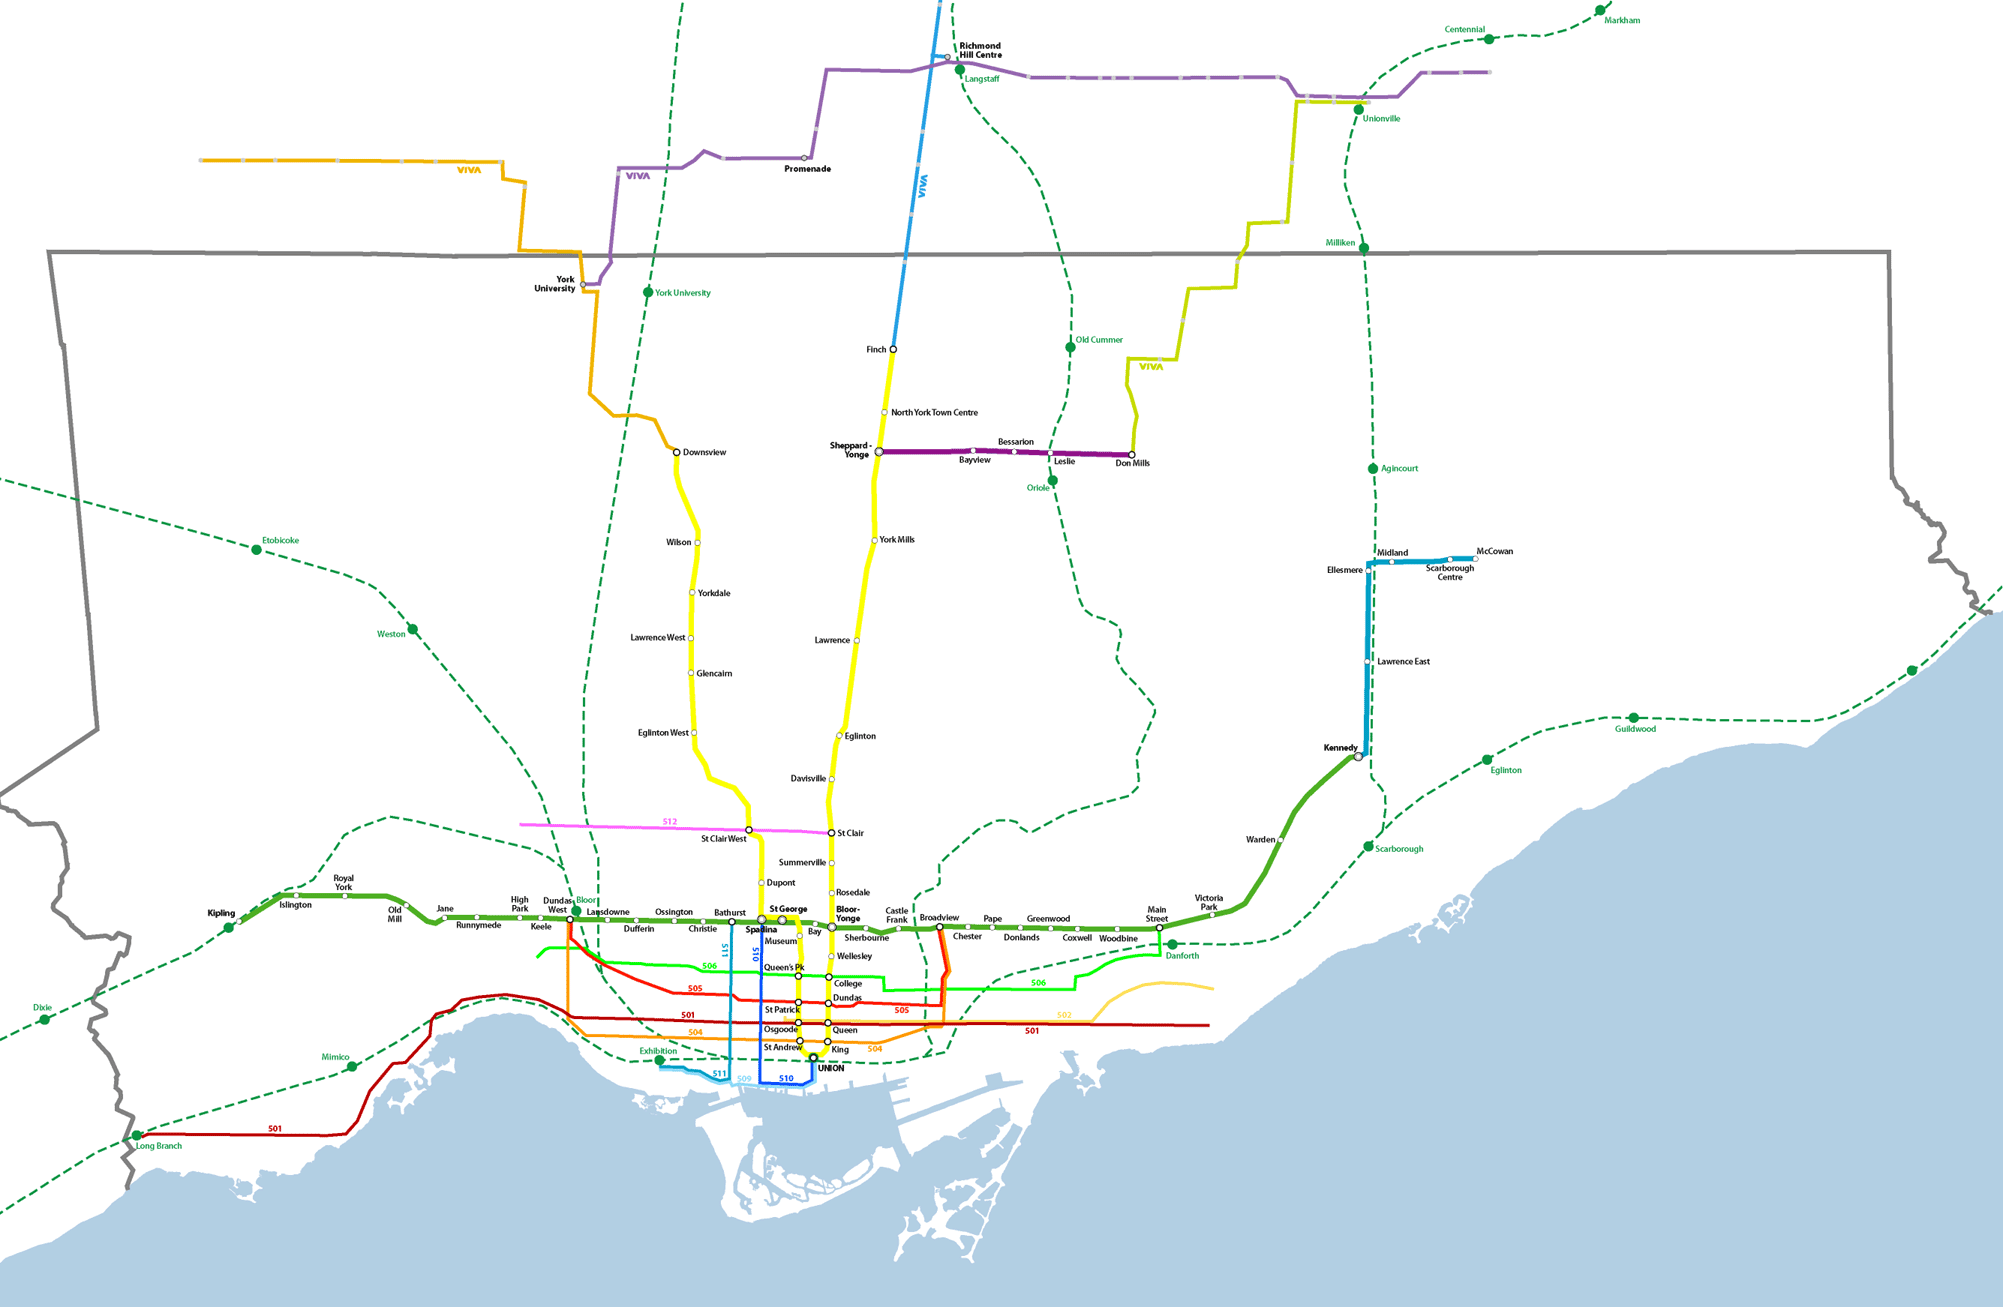 Toronto Subway Map Print.Bricoleurbanism Toronto Transit Map Reimagined